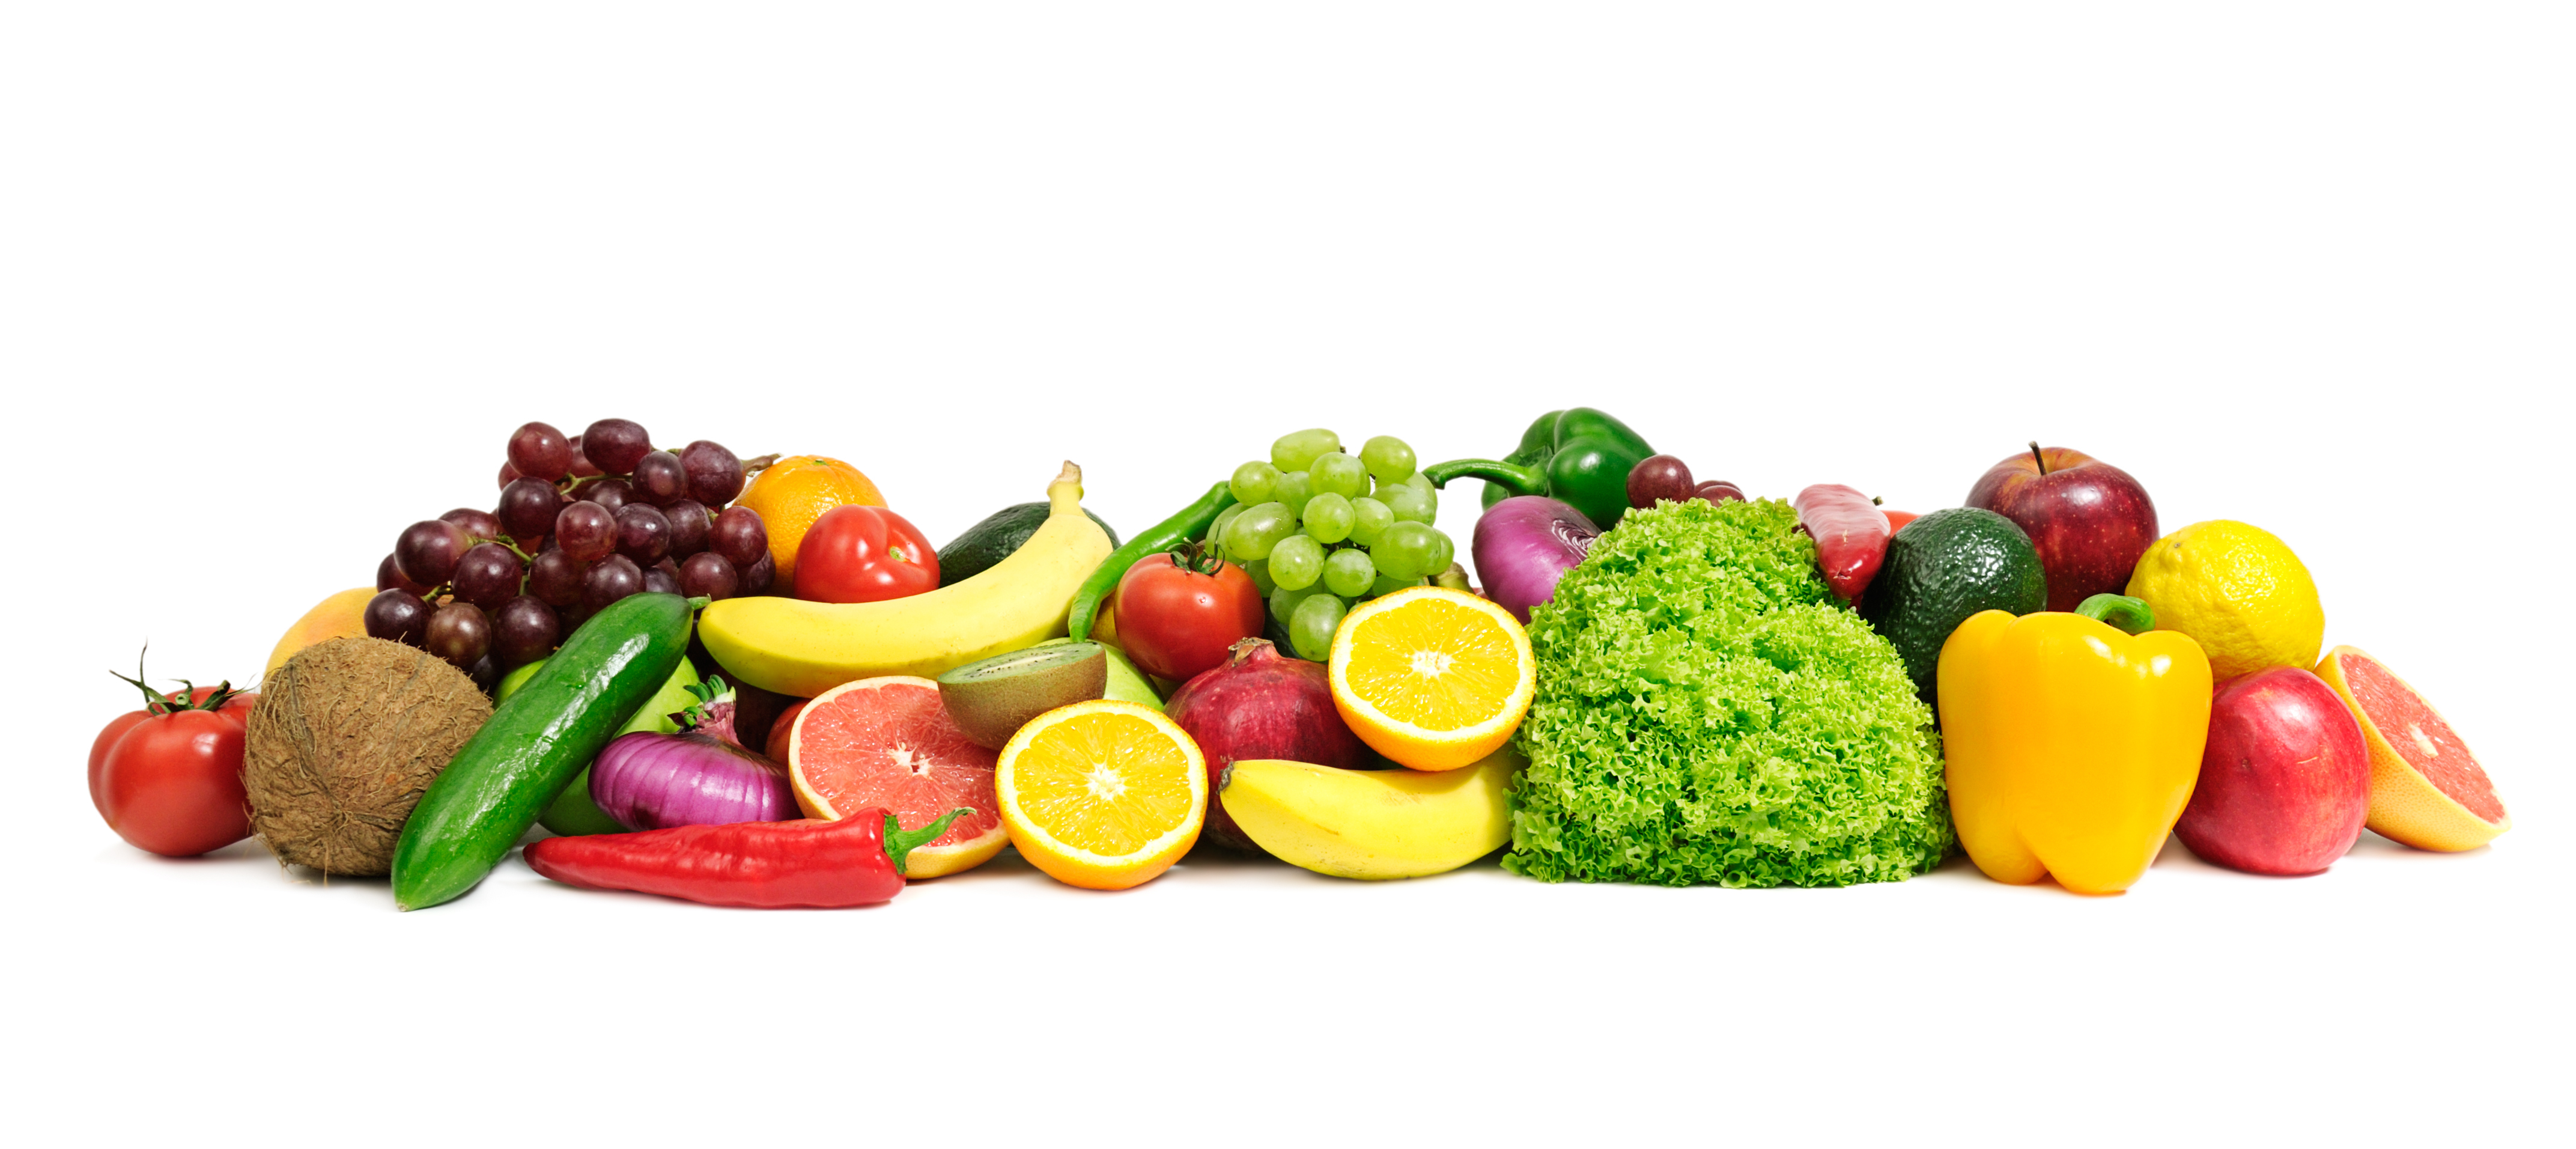 Clipart vegetables seasonal food. Getting the most out